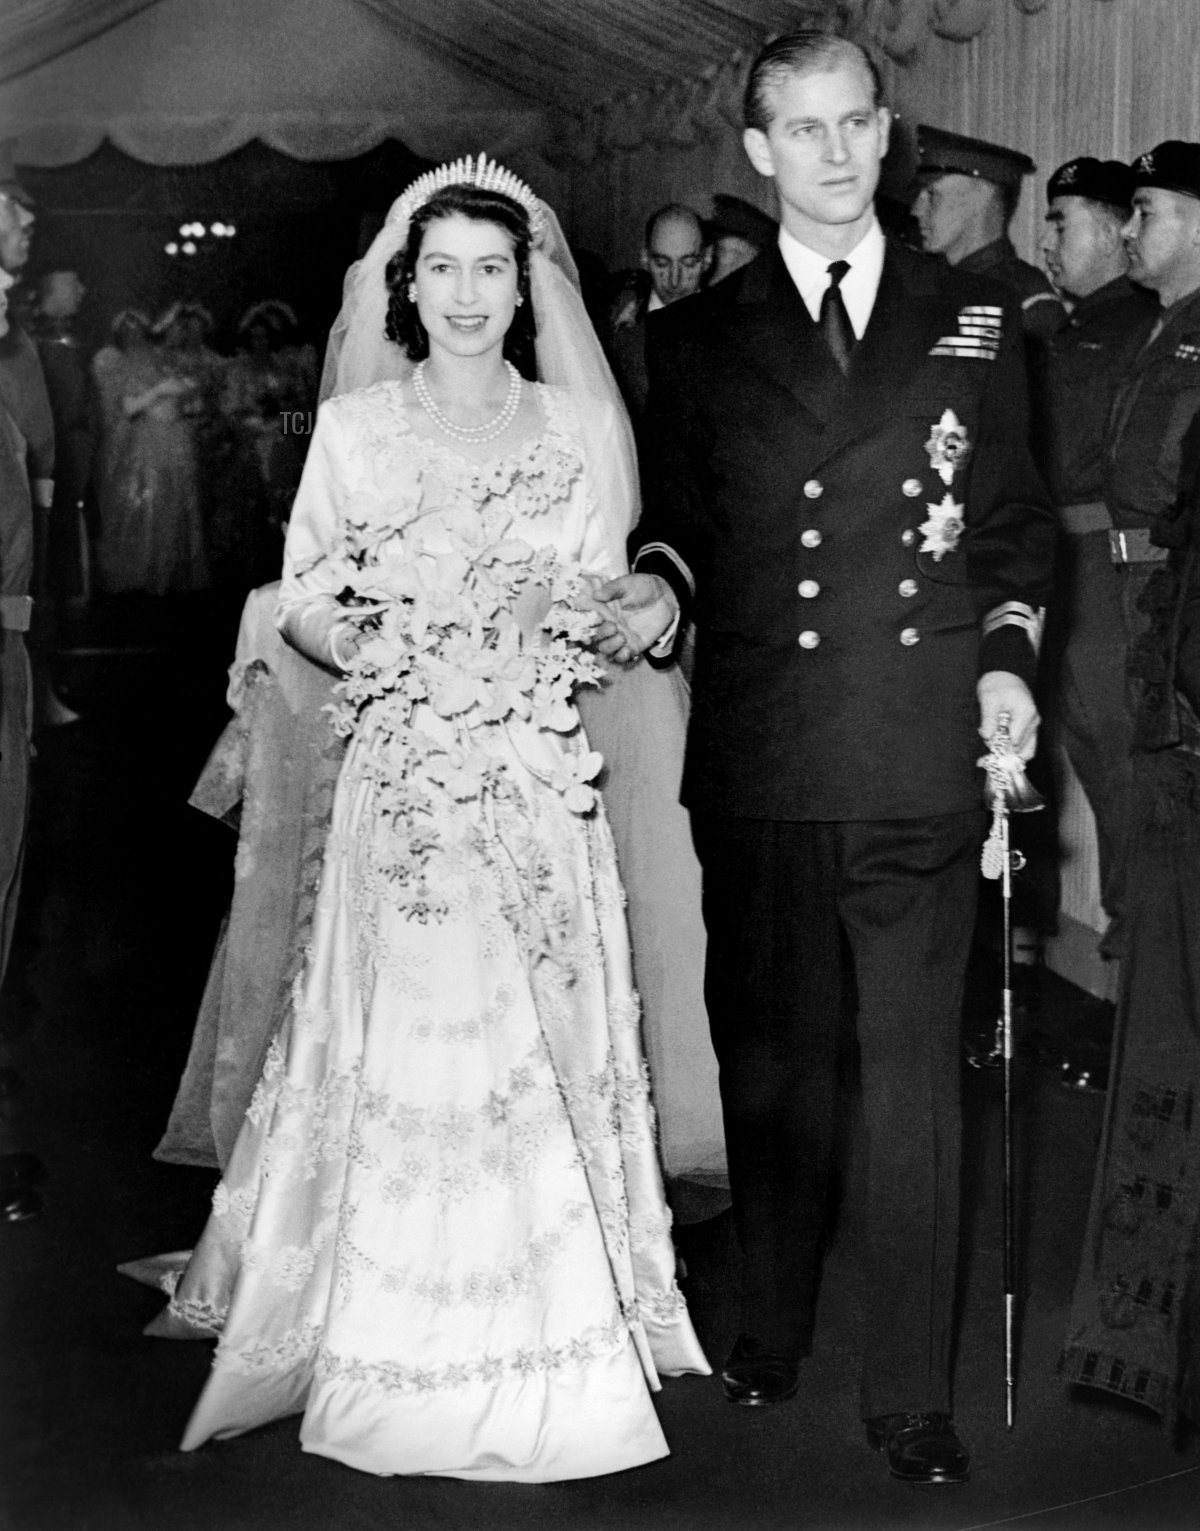 Princess Elizabeth of England and Prince Philip are seen on their wedding day 20th November 1947, in London